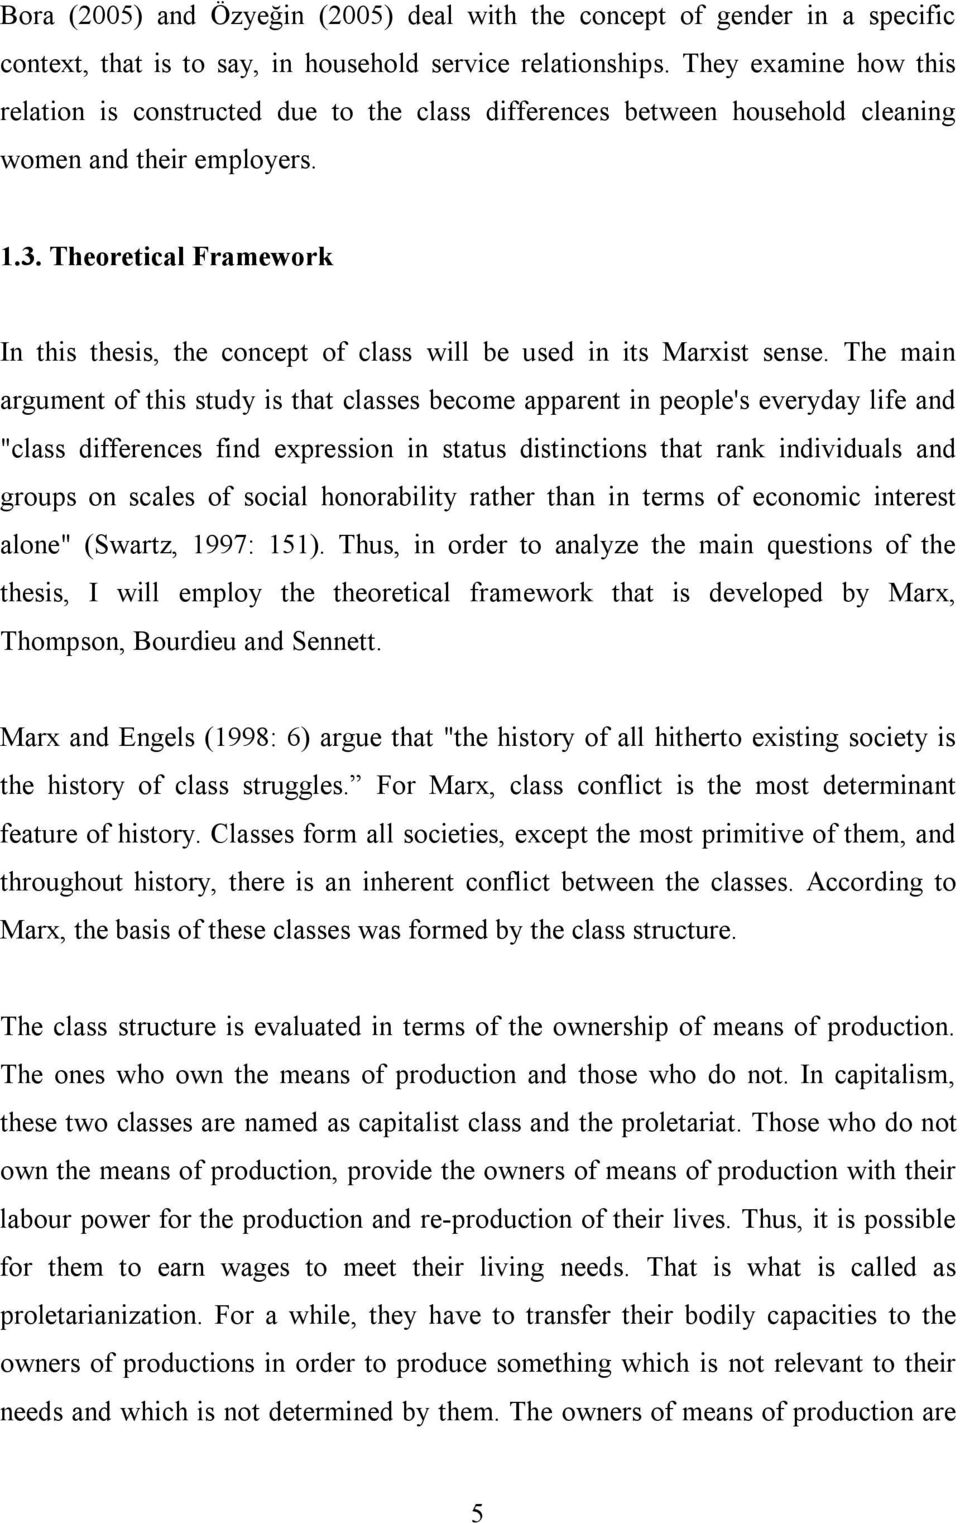 Theoretical Framework In this thesis, the concept of class will be used in its Marxist sense.